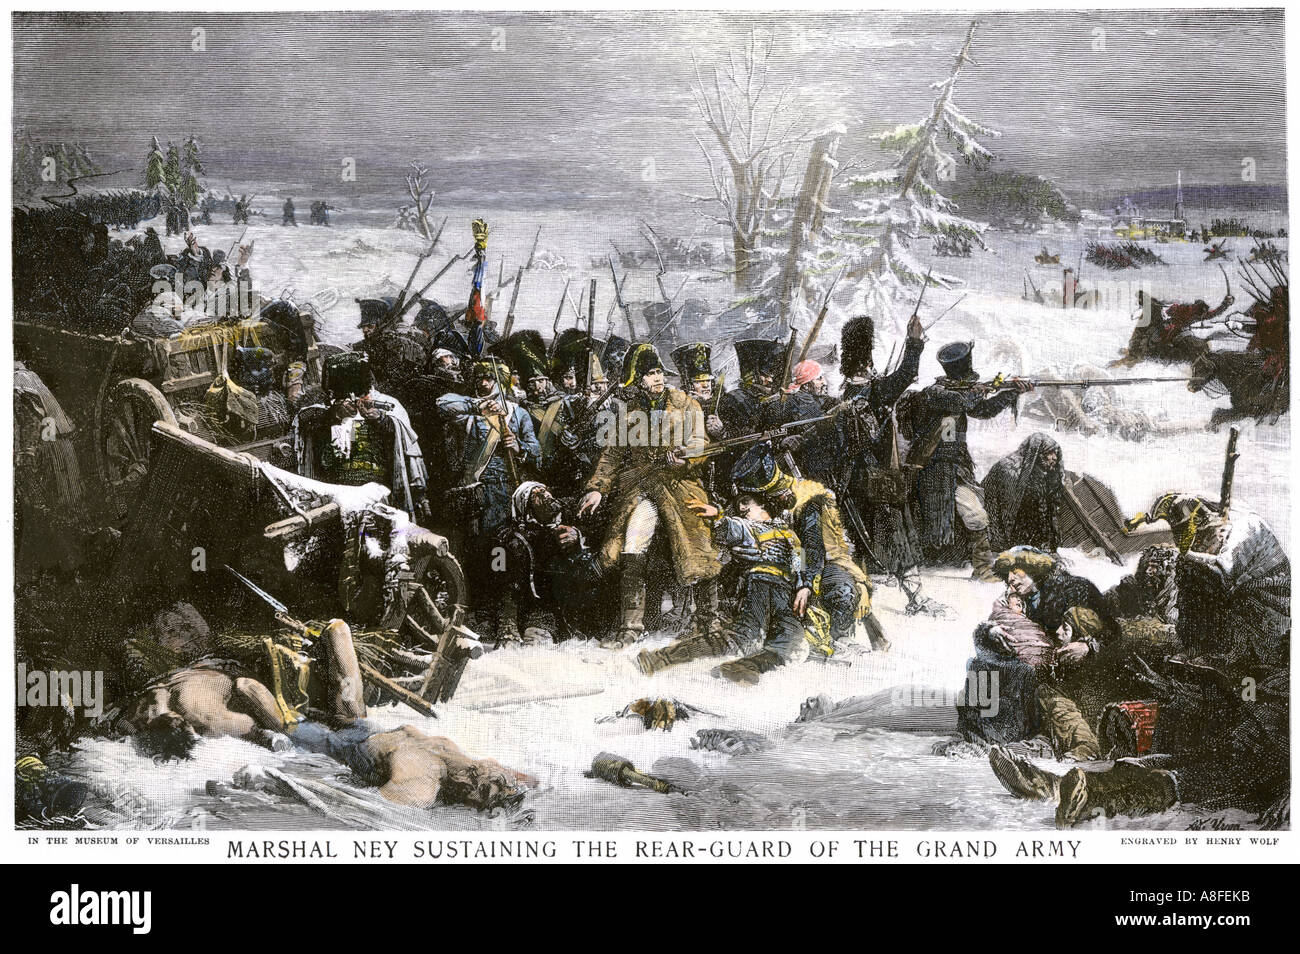 Marshal Ney bringing Napoleon's French rear guard out of Russia with heavy losses 1812. Hand-colored halftone - Stock Image